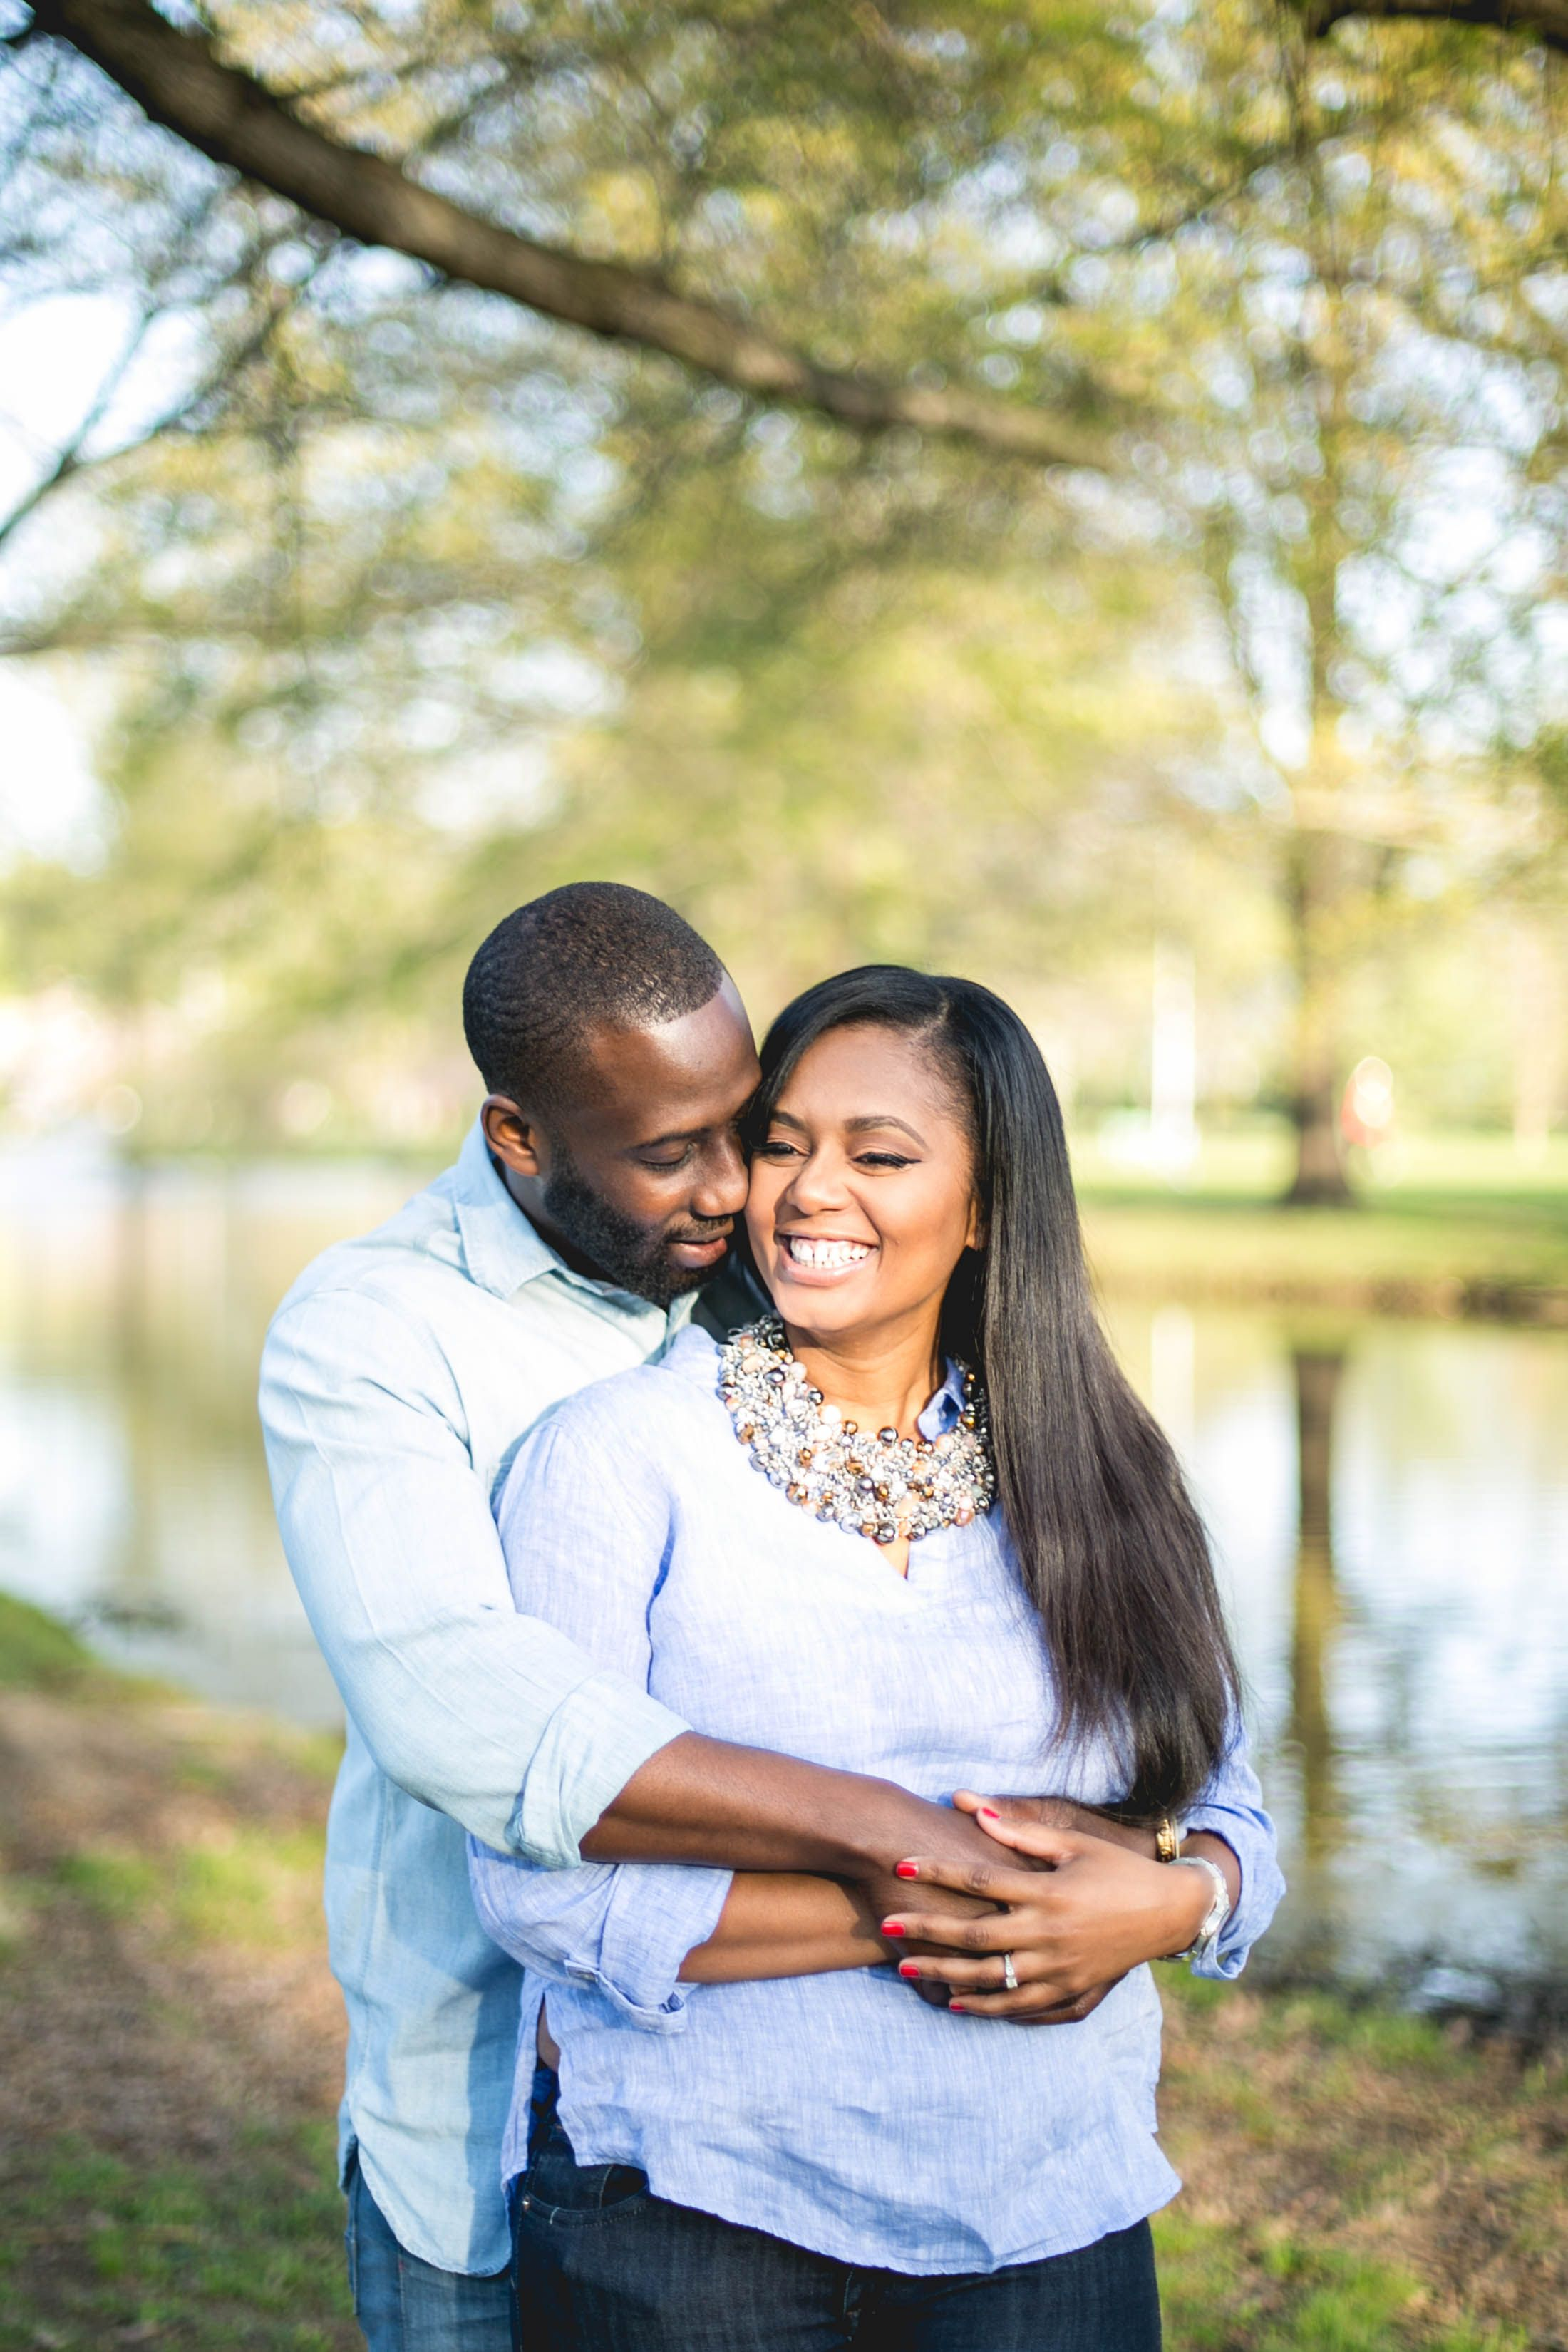 These two got married at a beautiful estate that had a lake, so for their…